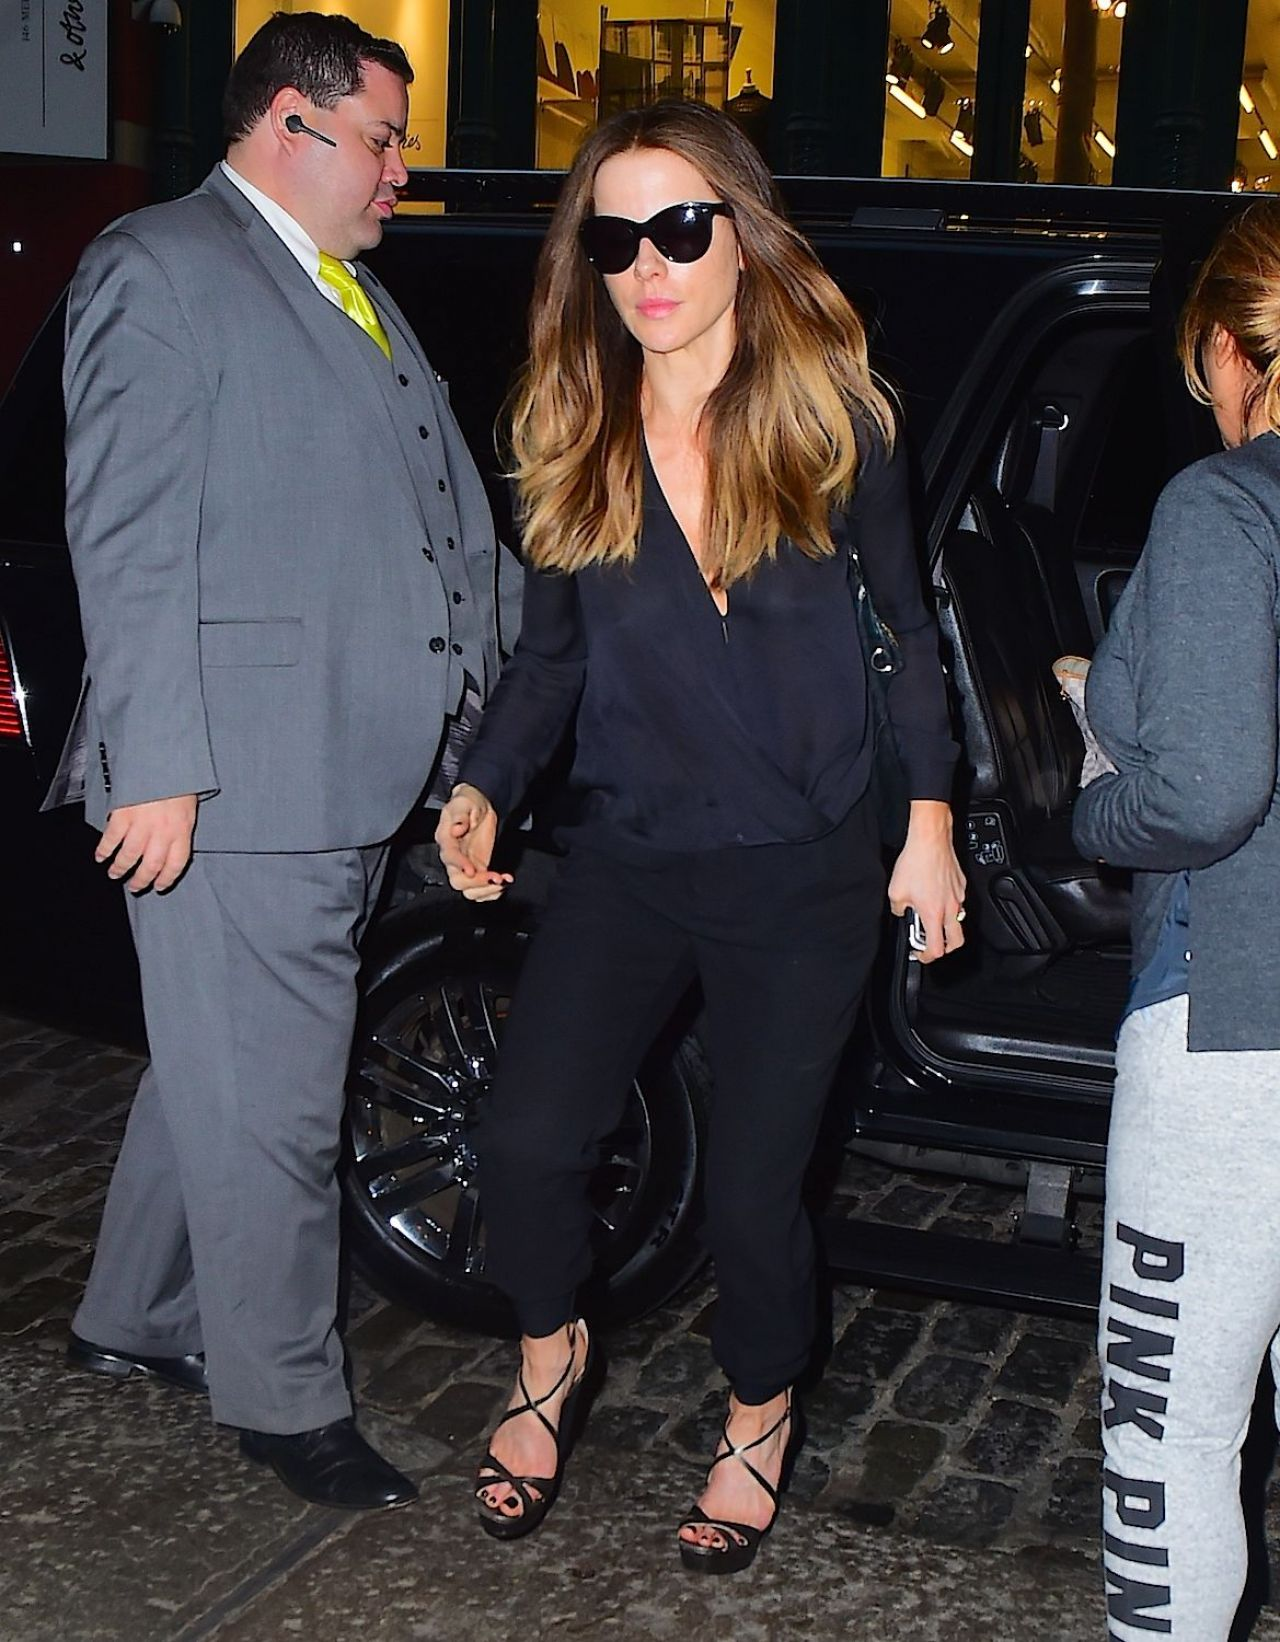 Kate Beckinsale At The Mercer Kitchen In New York City 10 6 2016